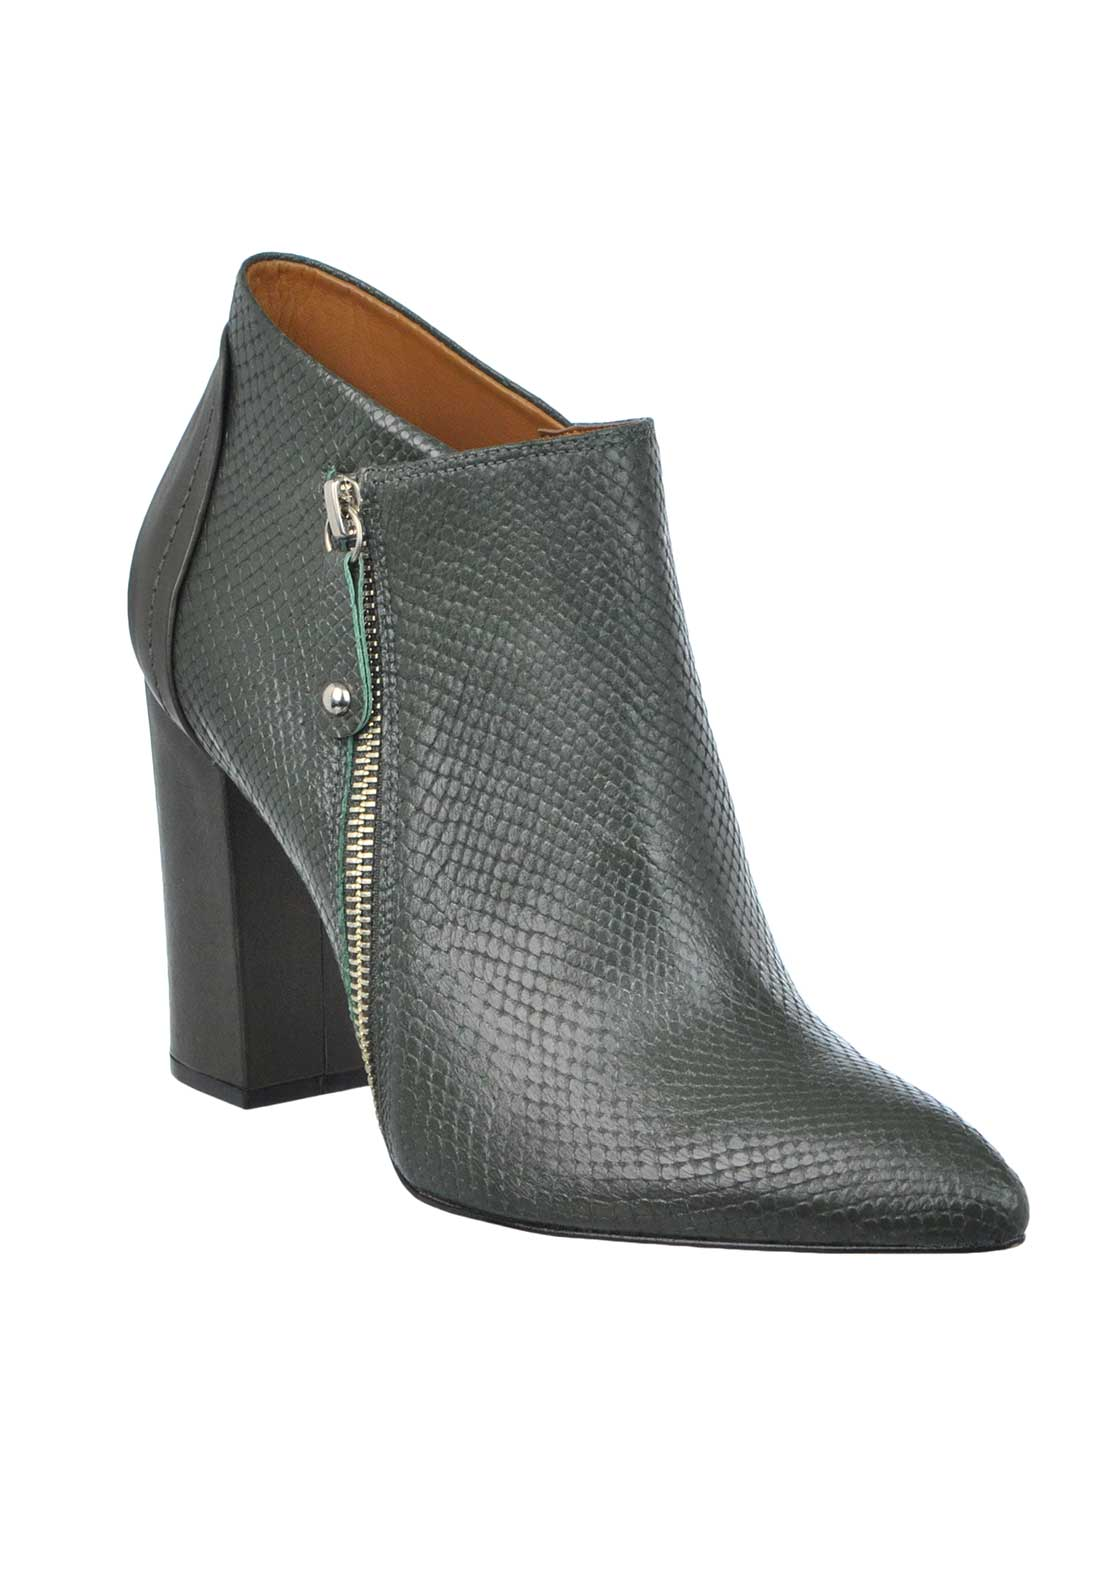 Unique Footwear Leather Reptile Print Pointed Toe Block Heeled Boots, Green